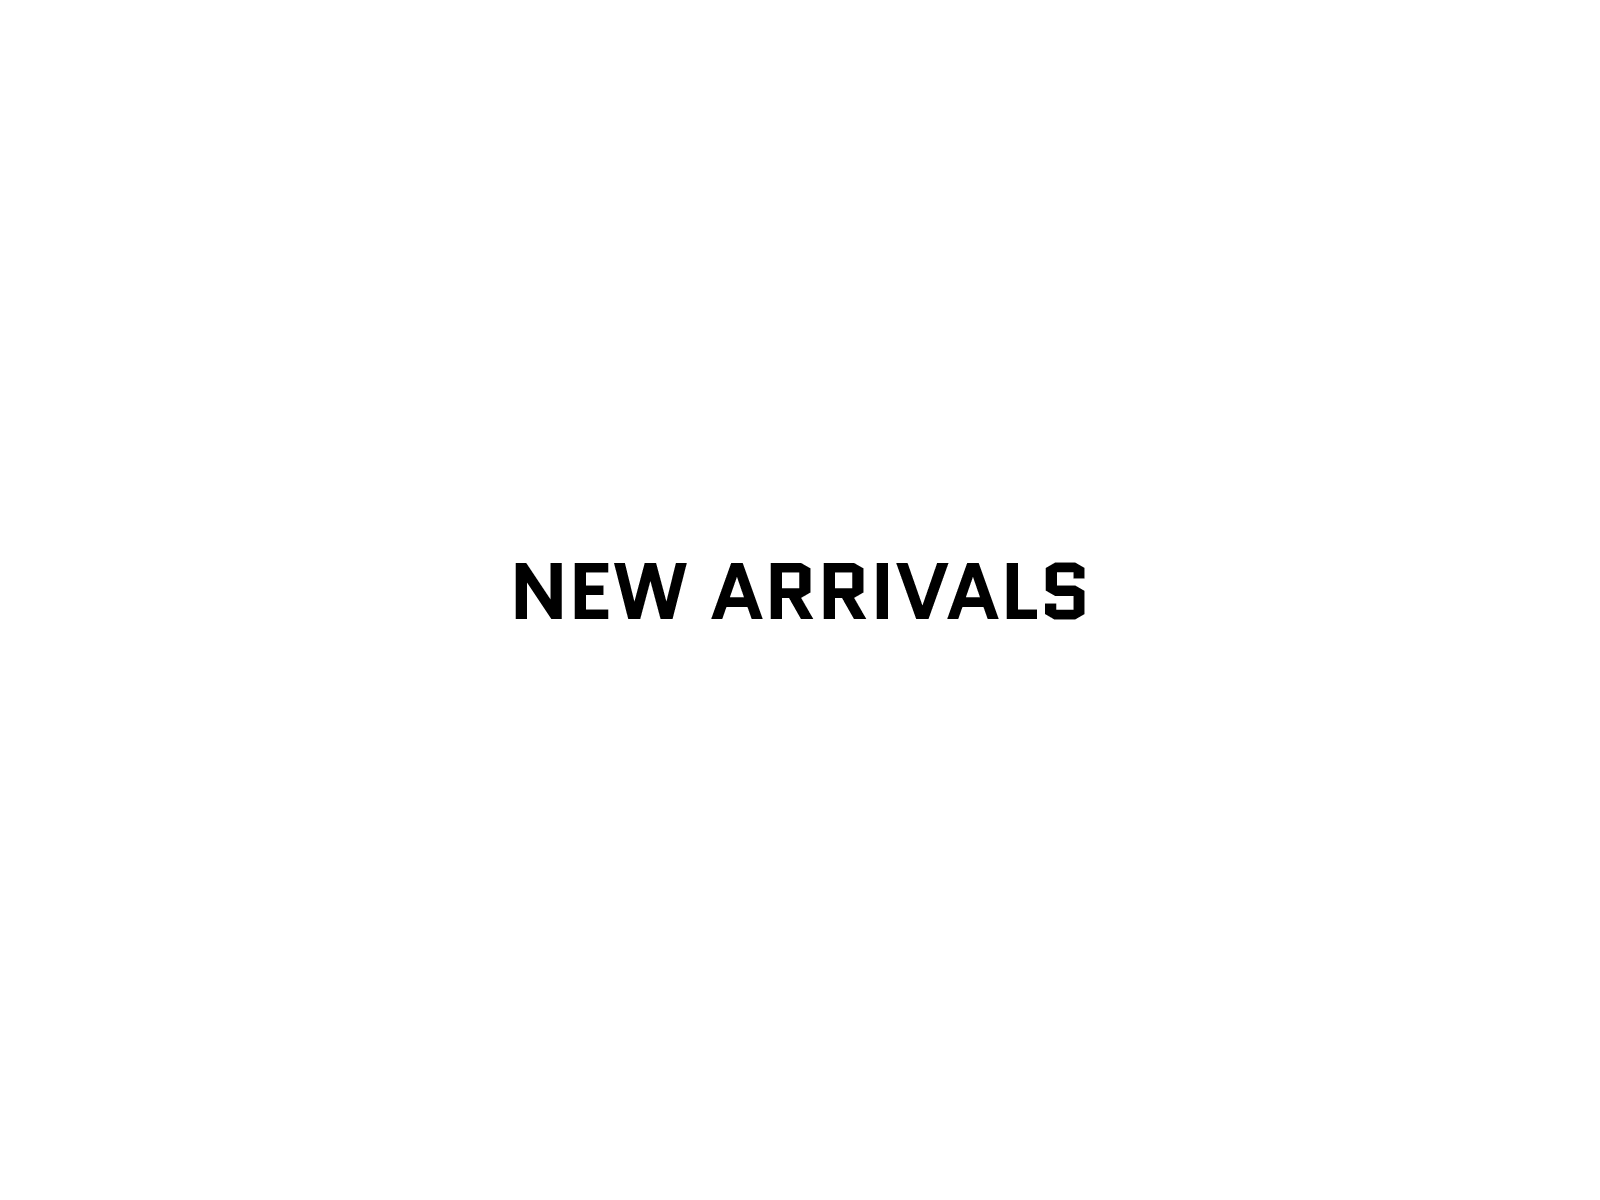 image of New arrivals